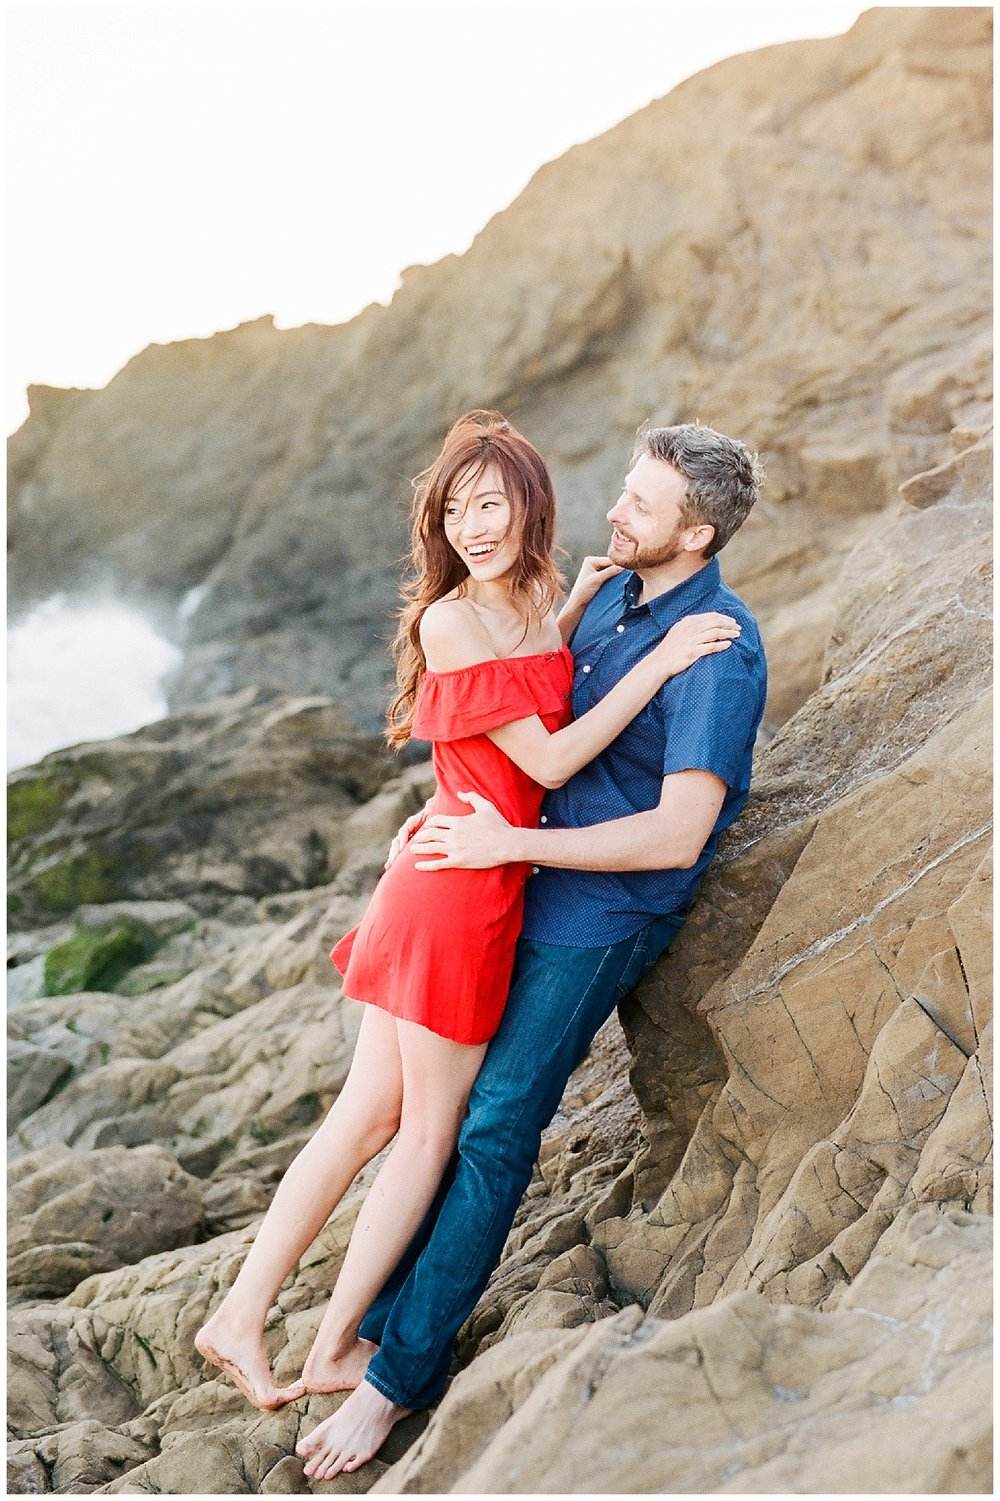 Janine_Licare_Photography_San_Francisco_Wedding_Photographer_0010.jpg